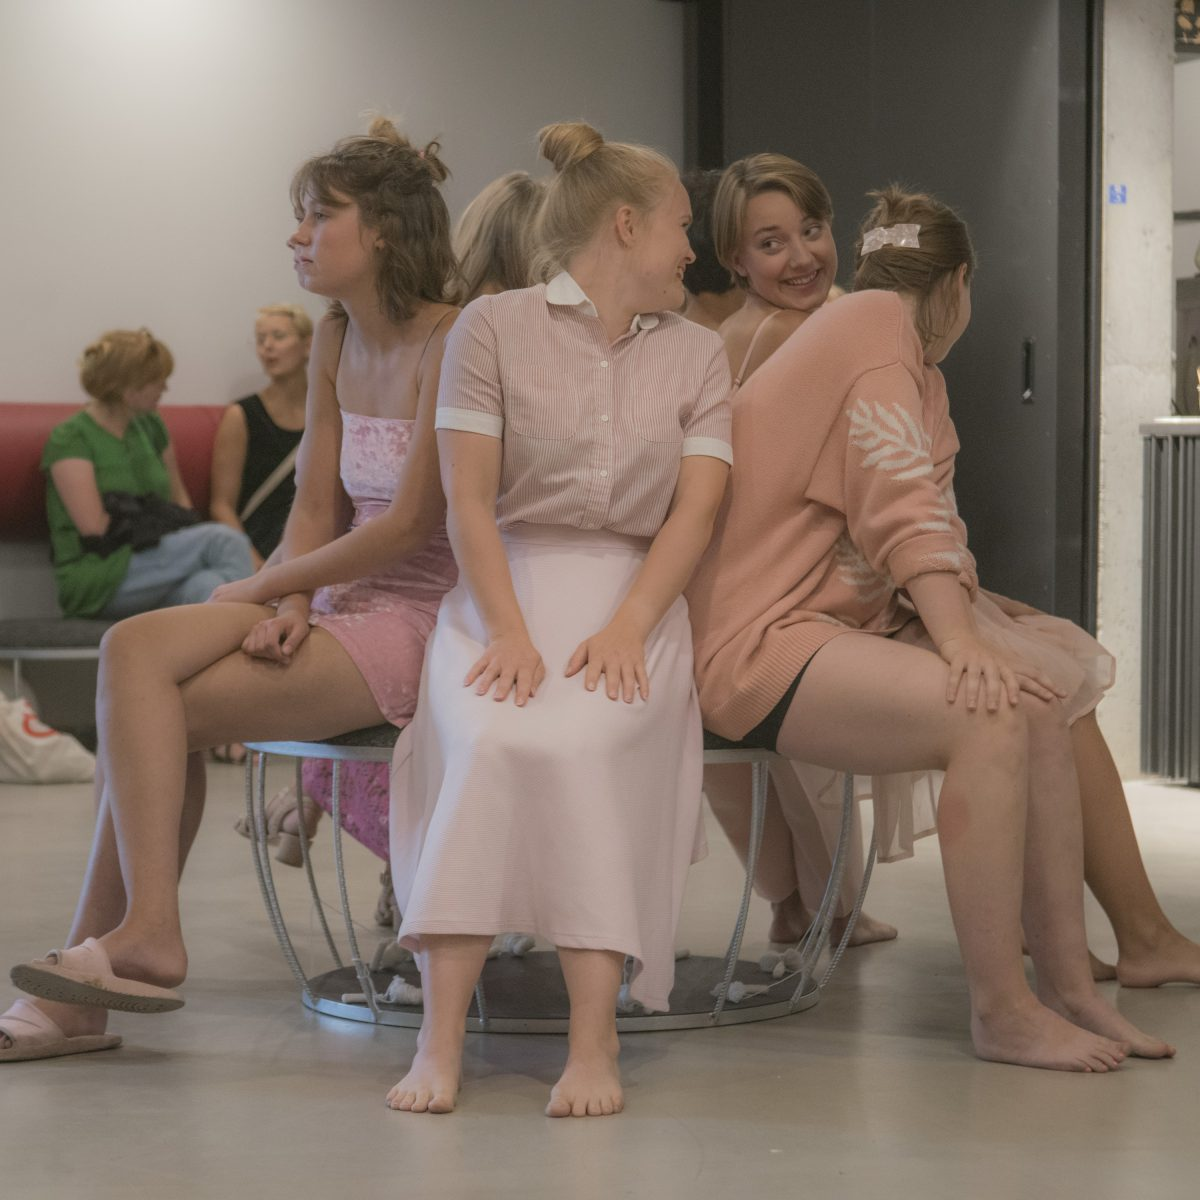 Theater photography: Mig og min menstruationskop (Me and my menstrual cup)